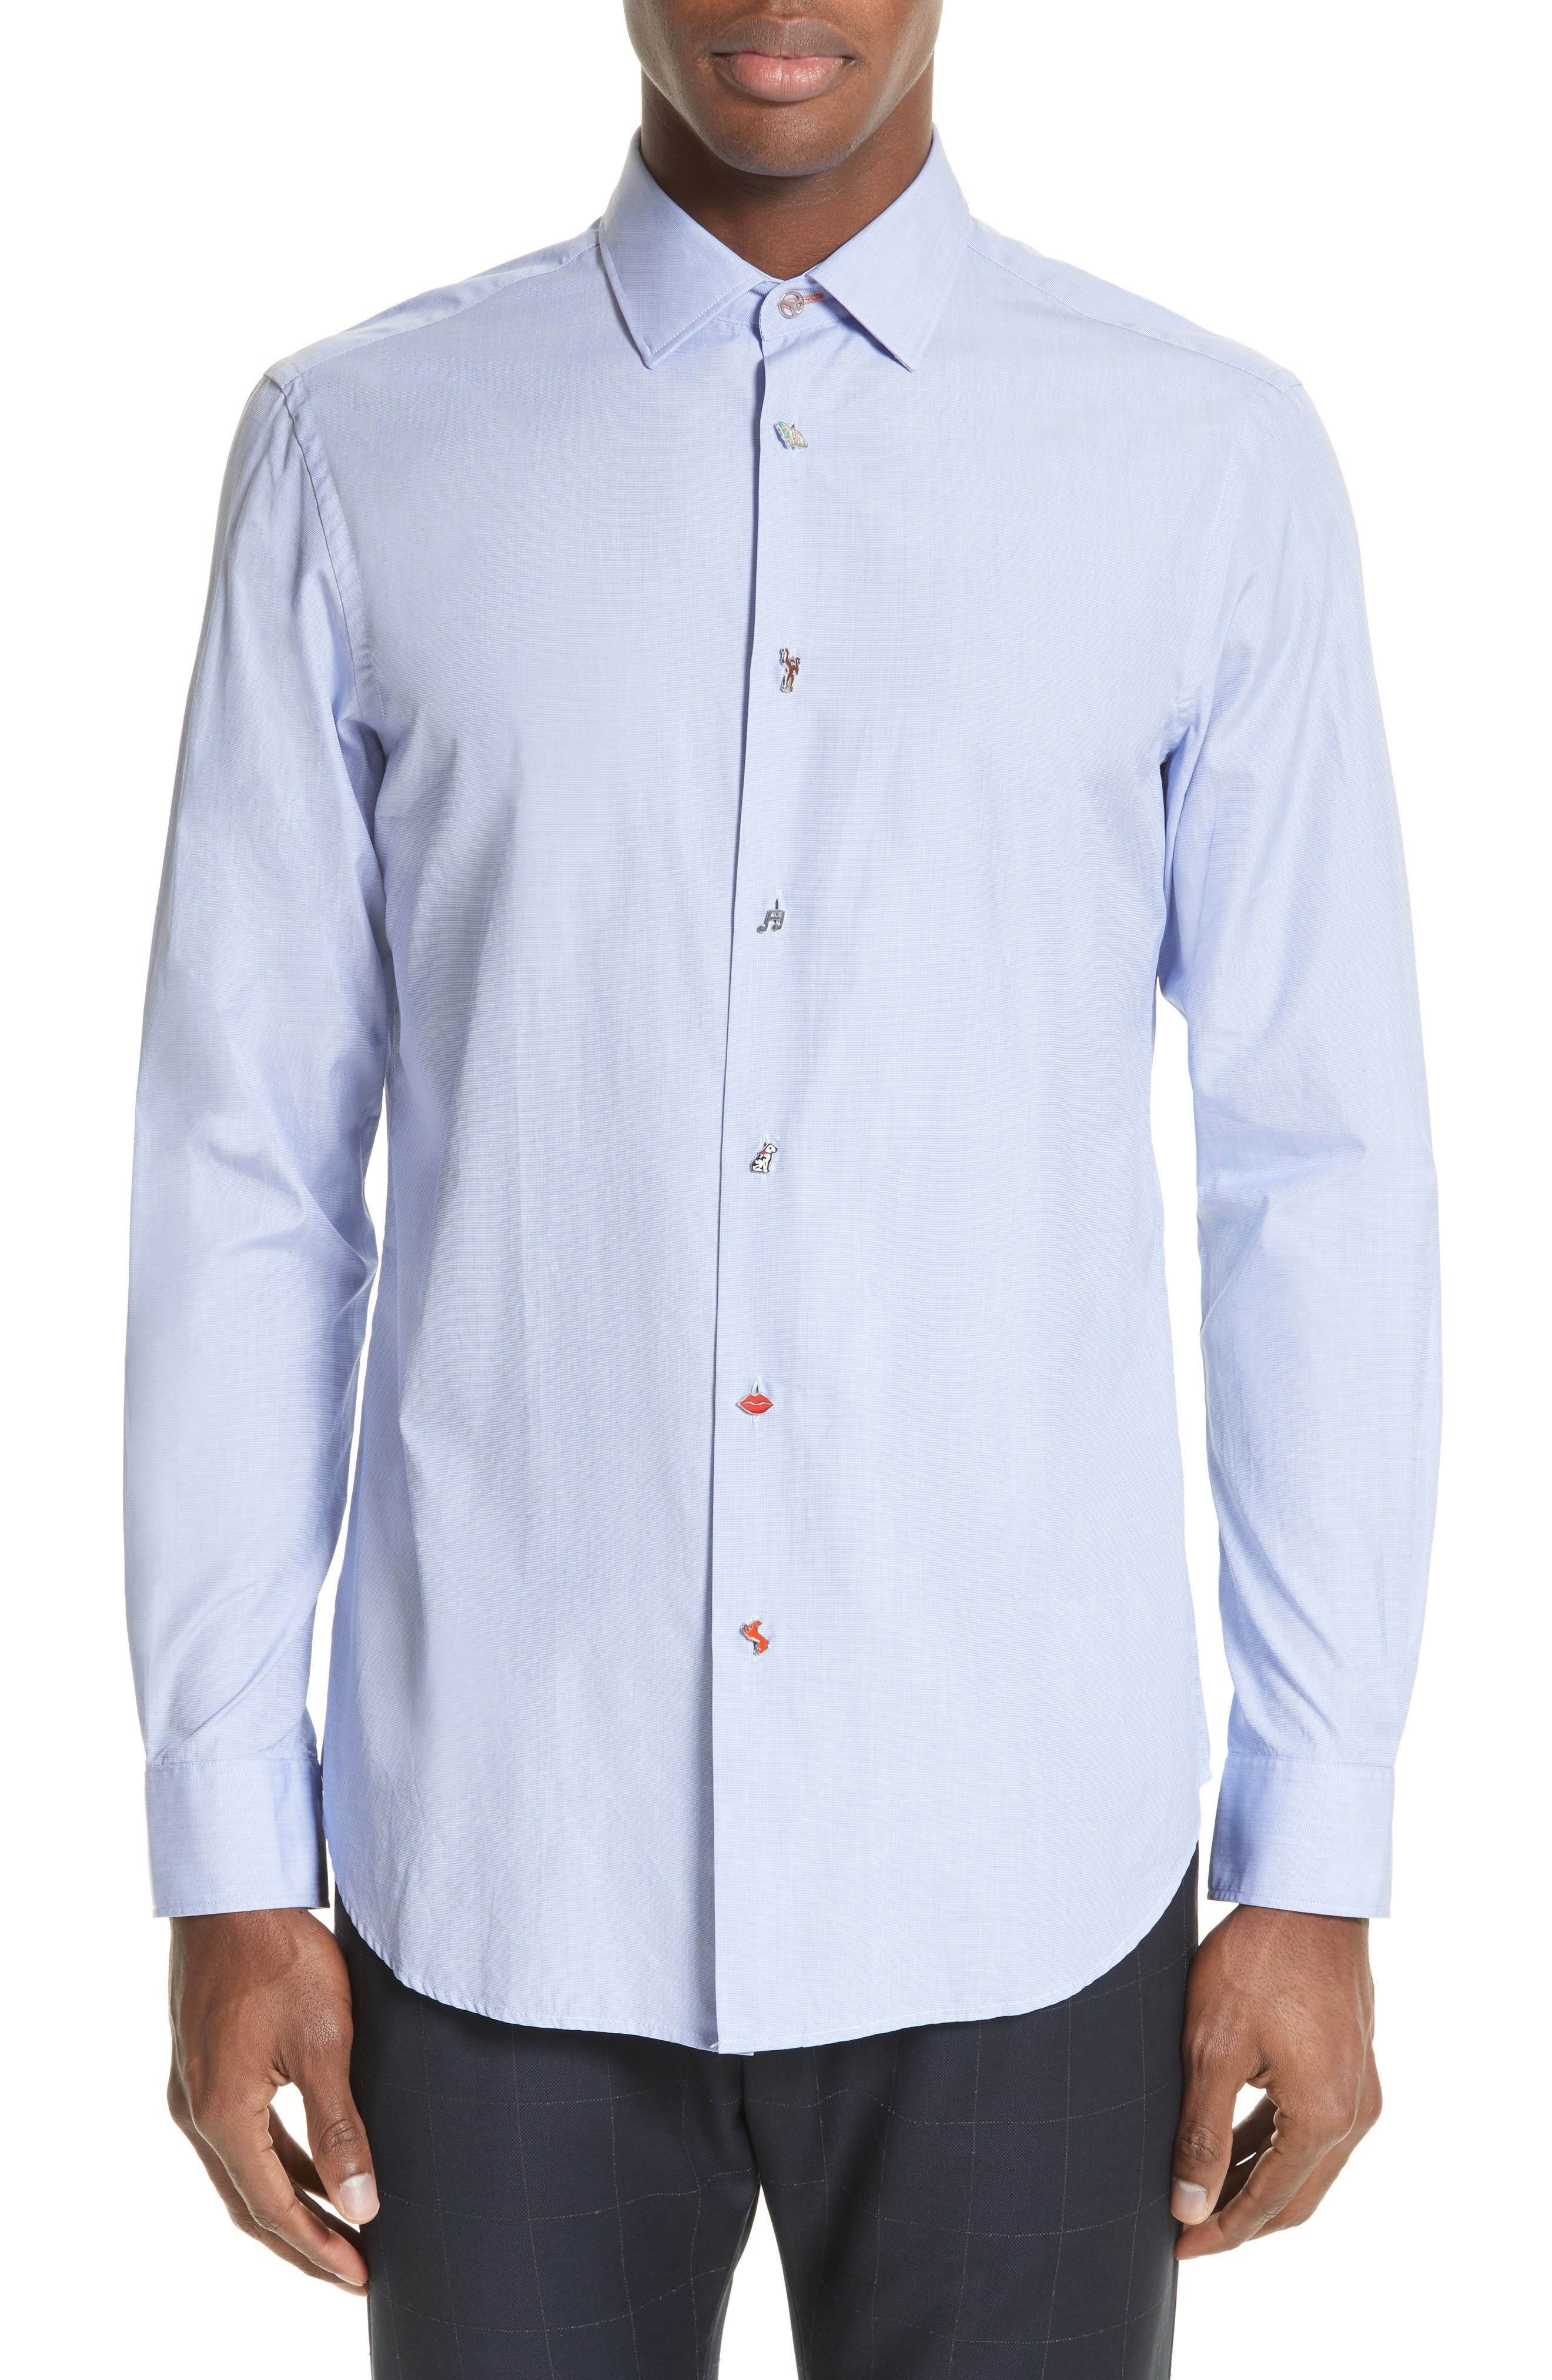 Main Image - Paul Smith Charm Button Sport Shirt